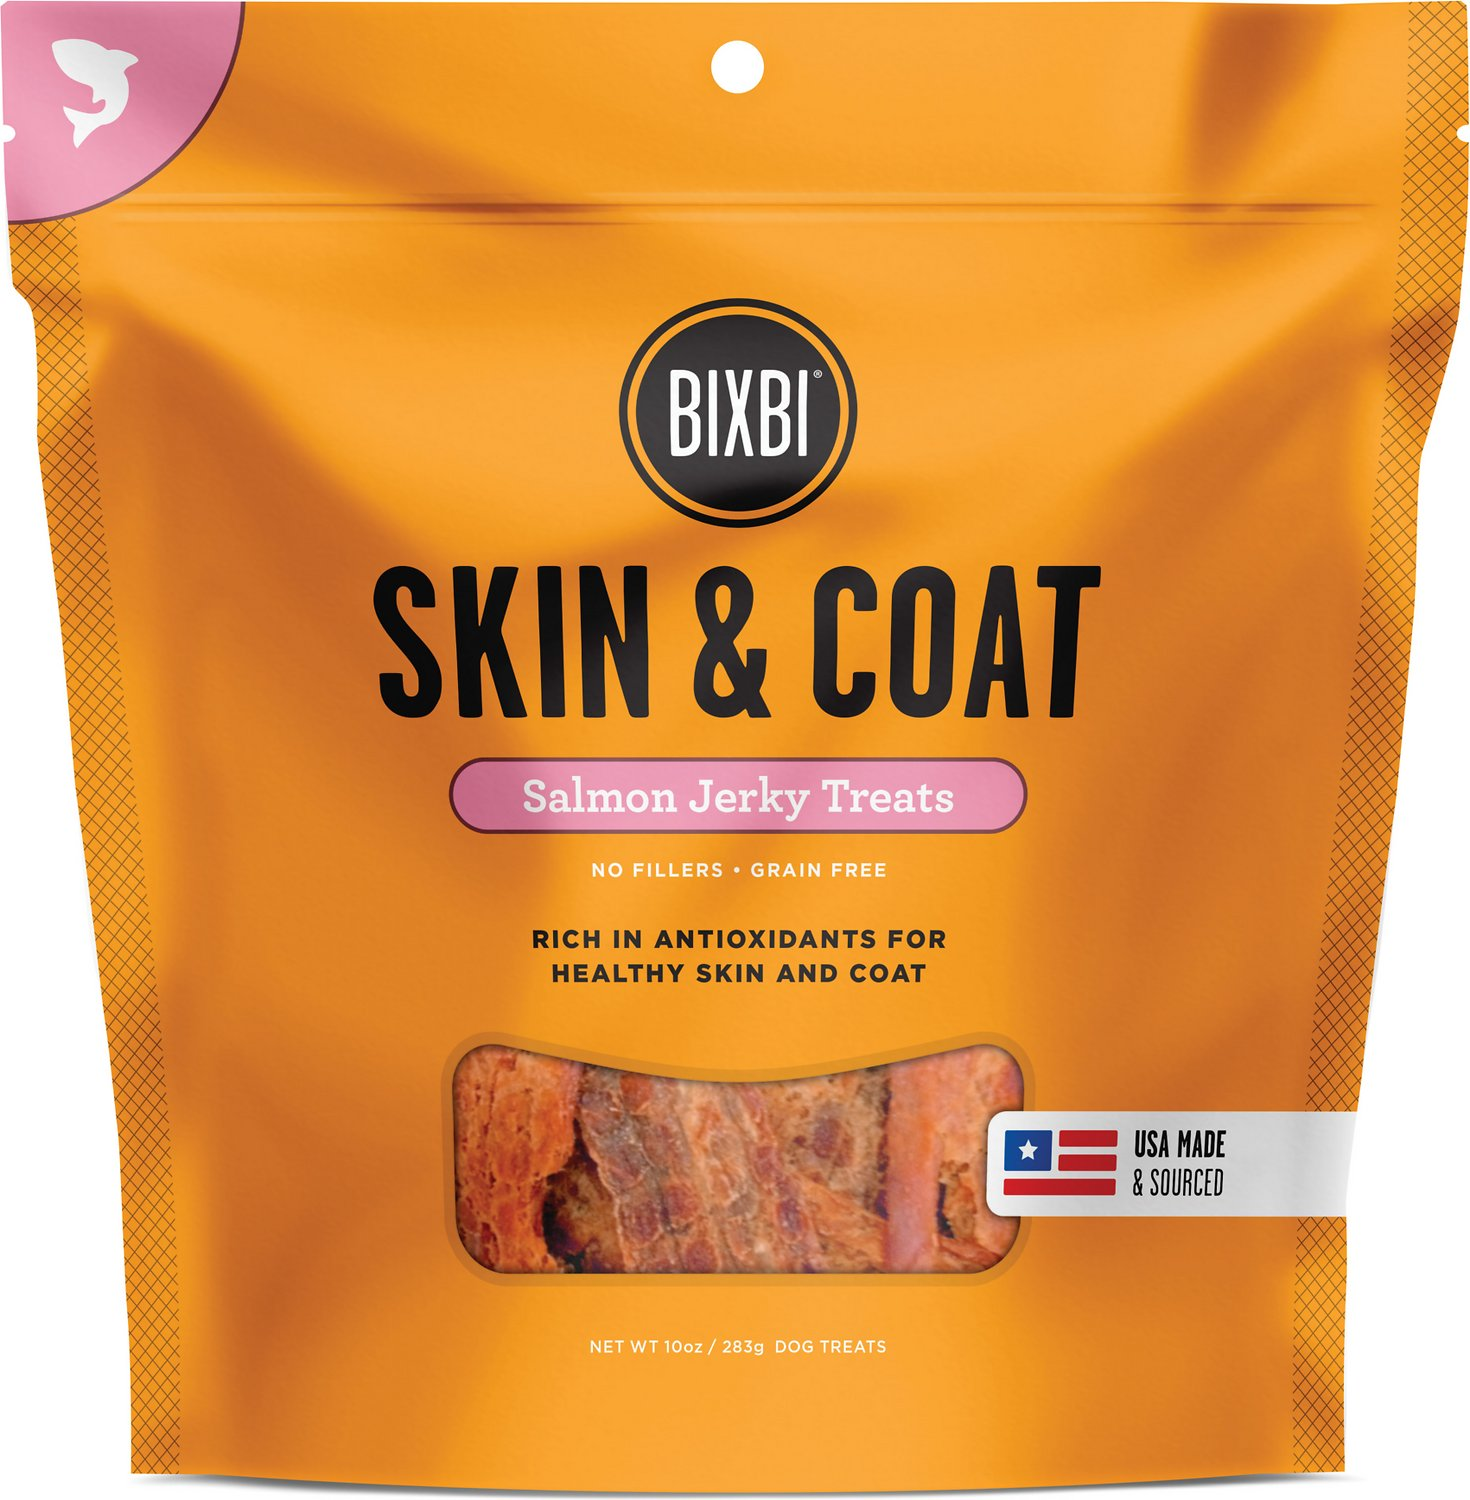 BIXBI Skin & Coat Salmon Jerky Dog Treats, 10-oz bag